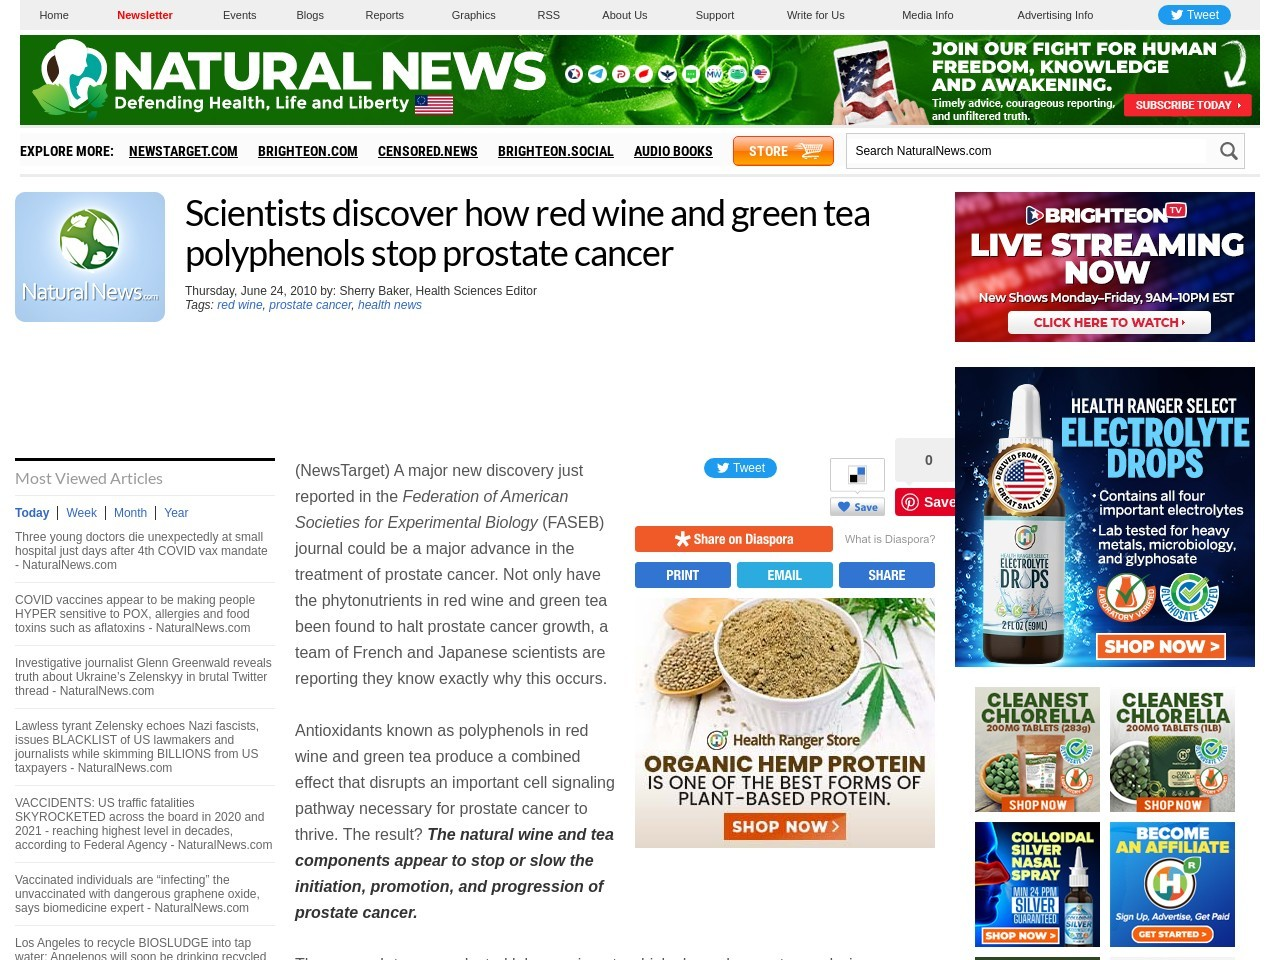 Scientists discover how red wine and green tea polyphenols stop prostate cancer